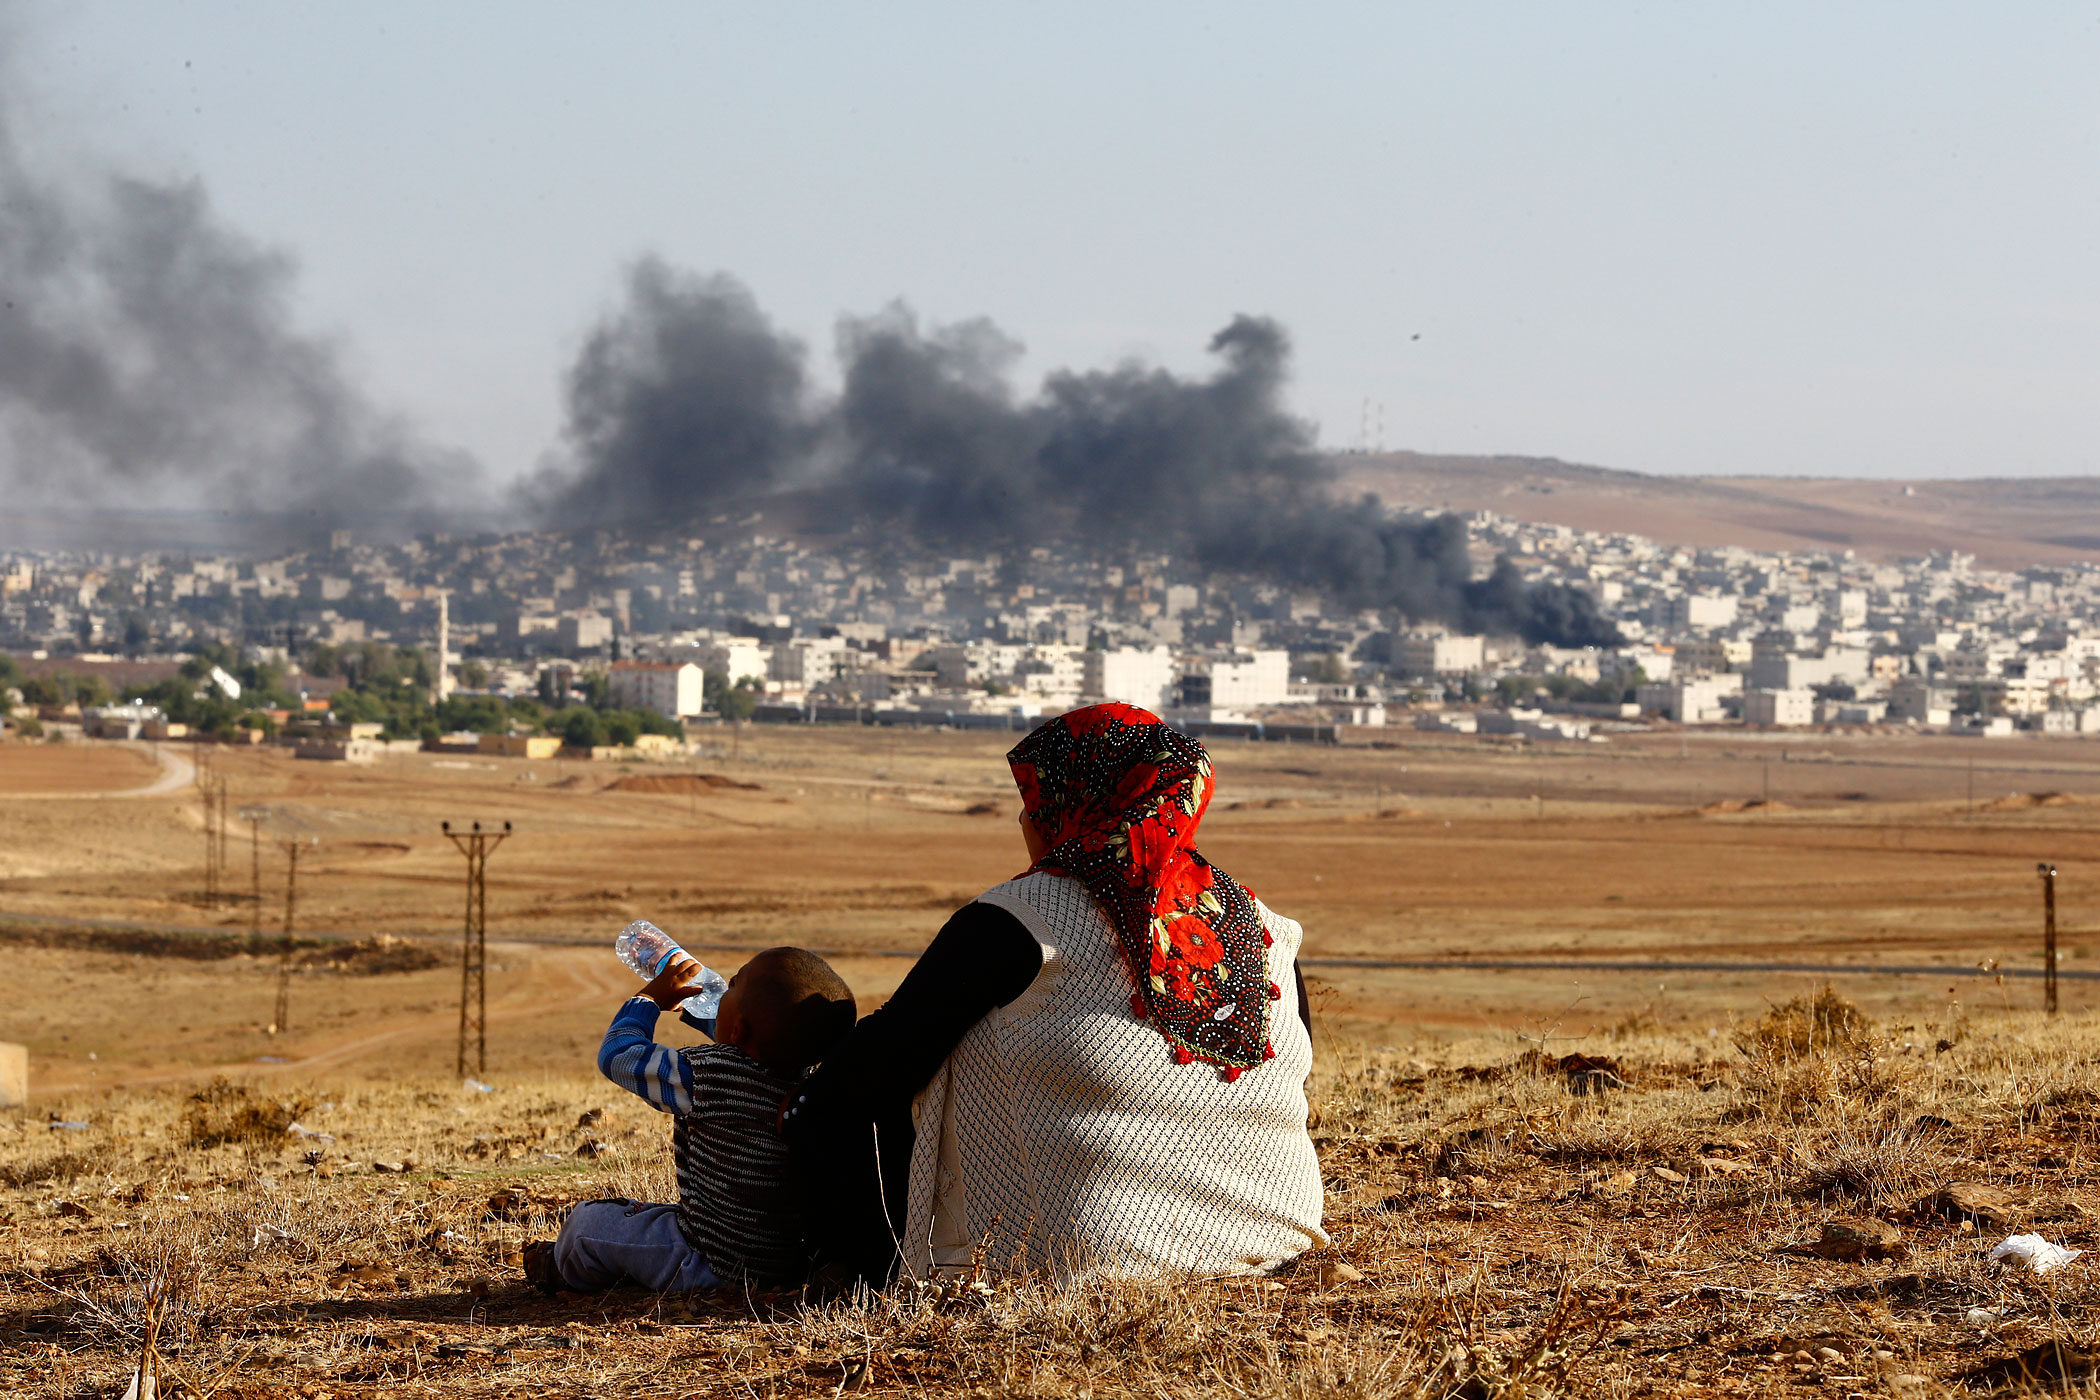 Turkish Kurds watch as smoke rises over the Syrian town of Kobani after an airstrike, October 18, 2014.